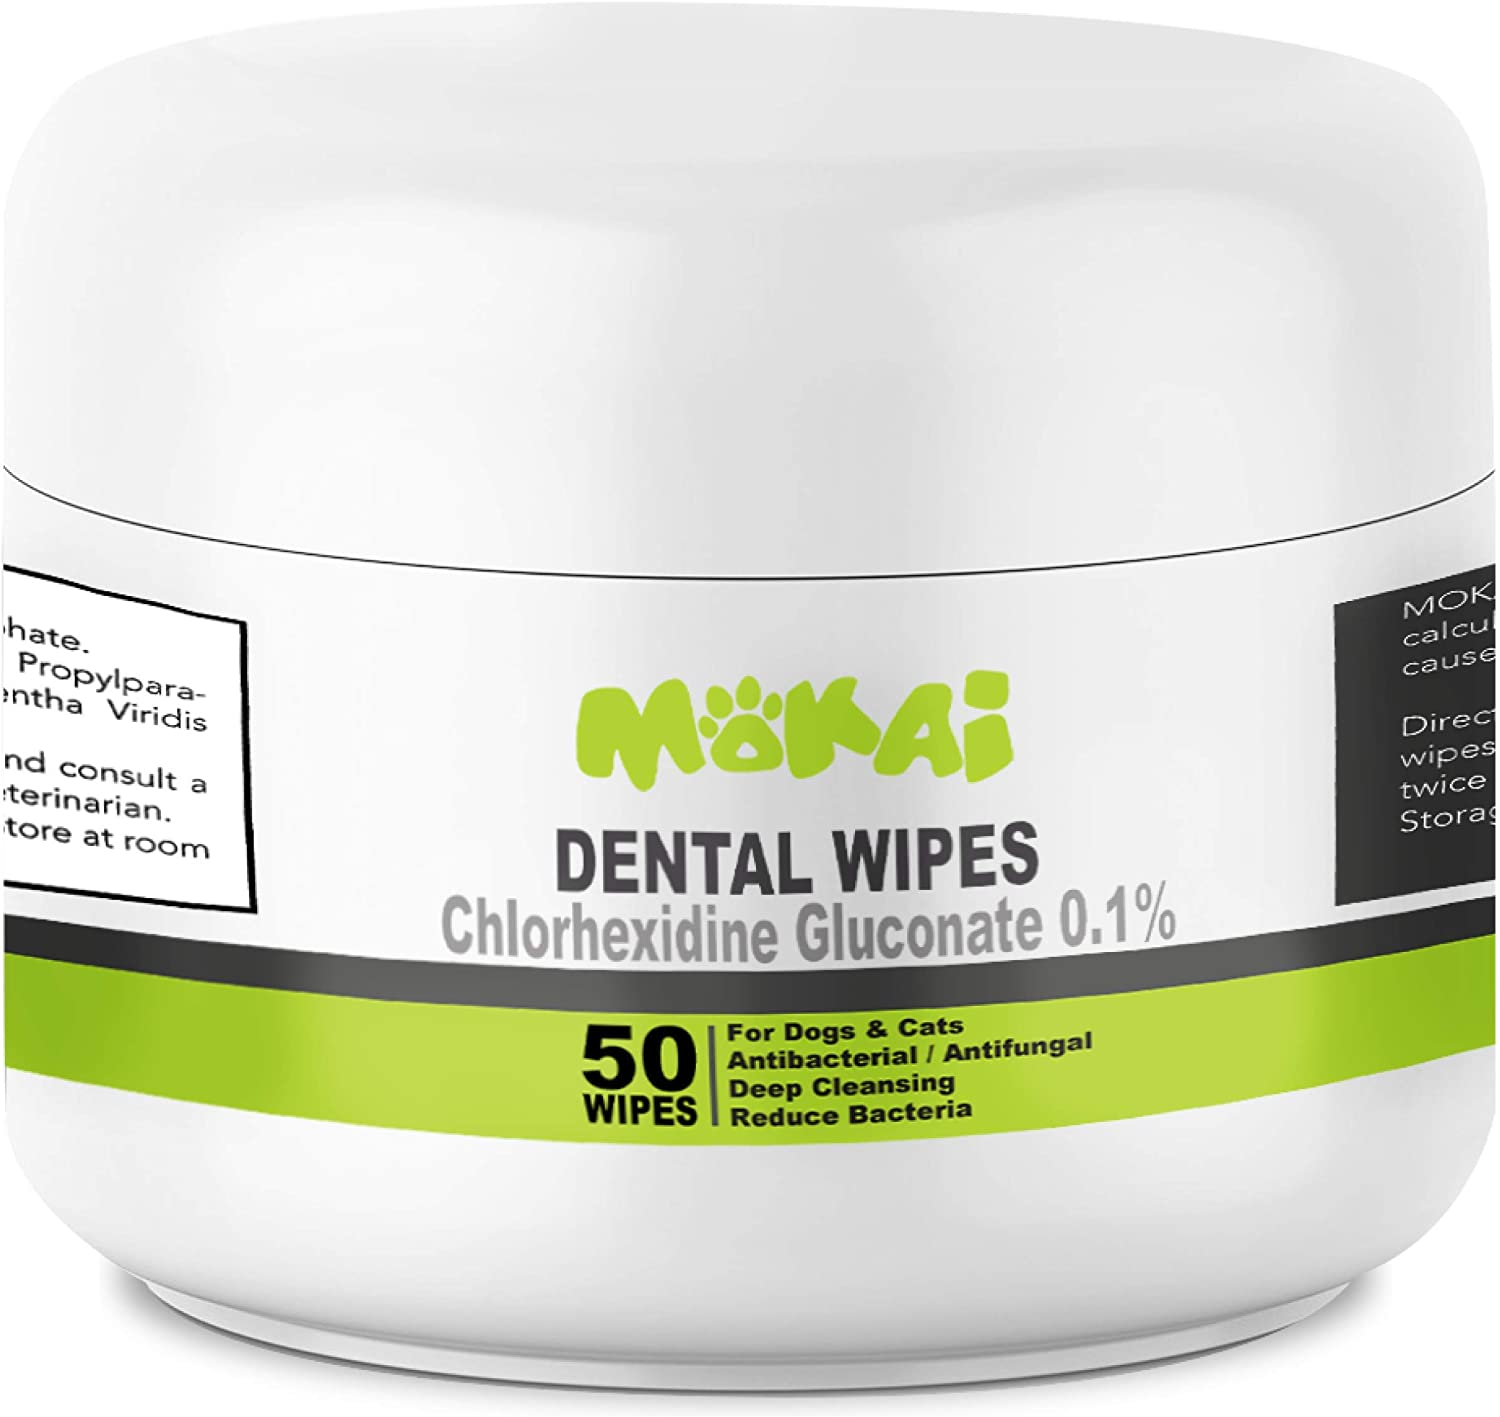 MOKAI Dental Wipes for Dogs and Cats (50 Count) : Pet Supplies